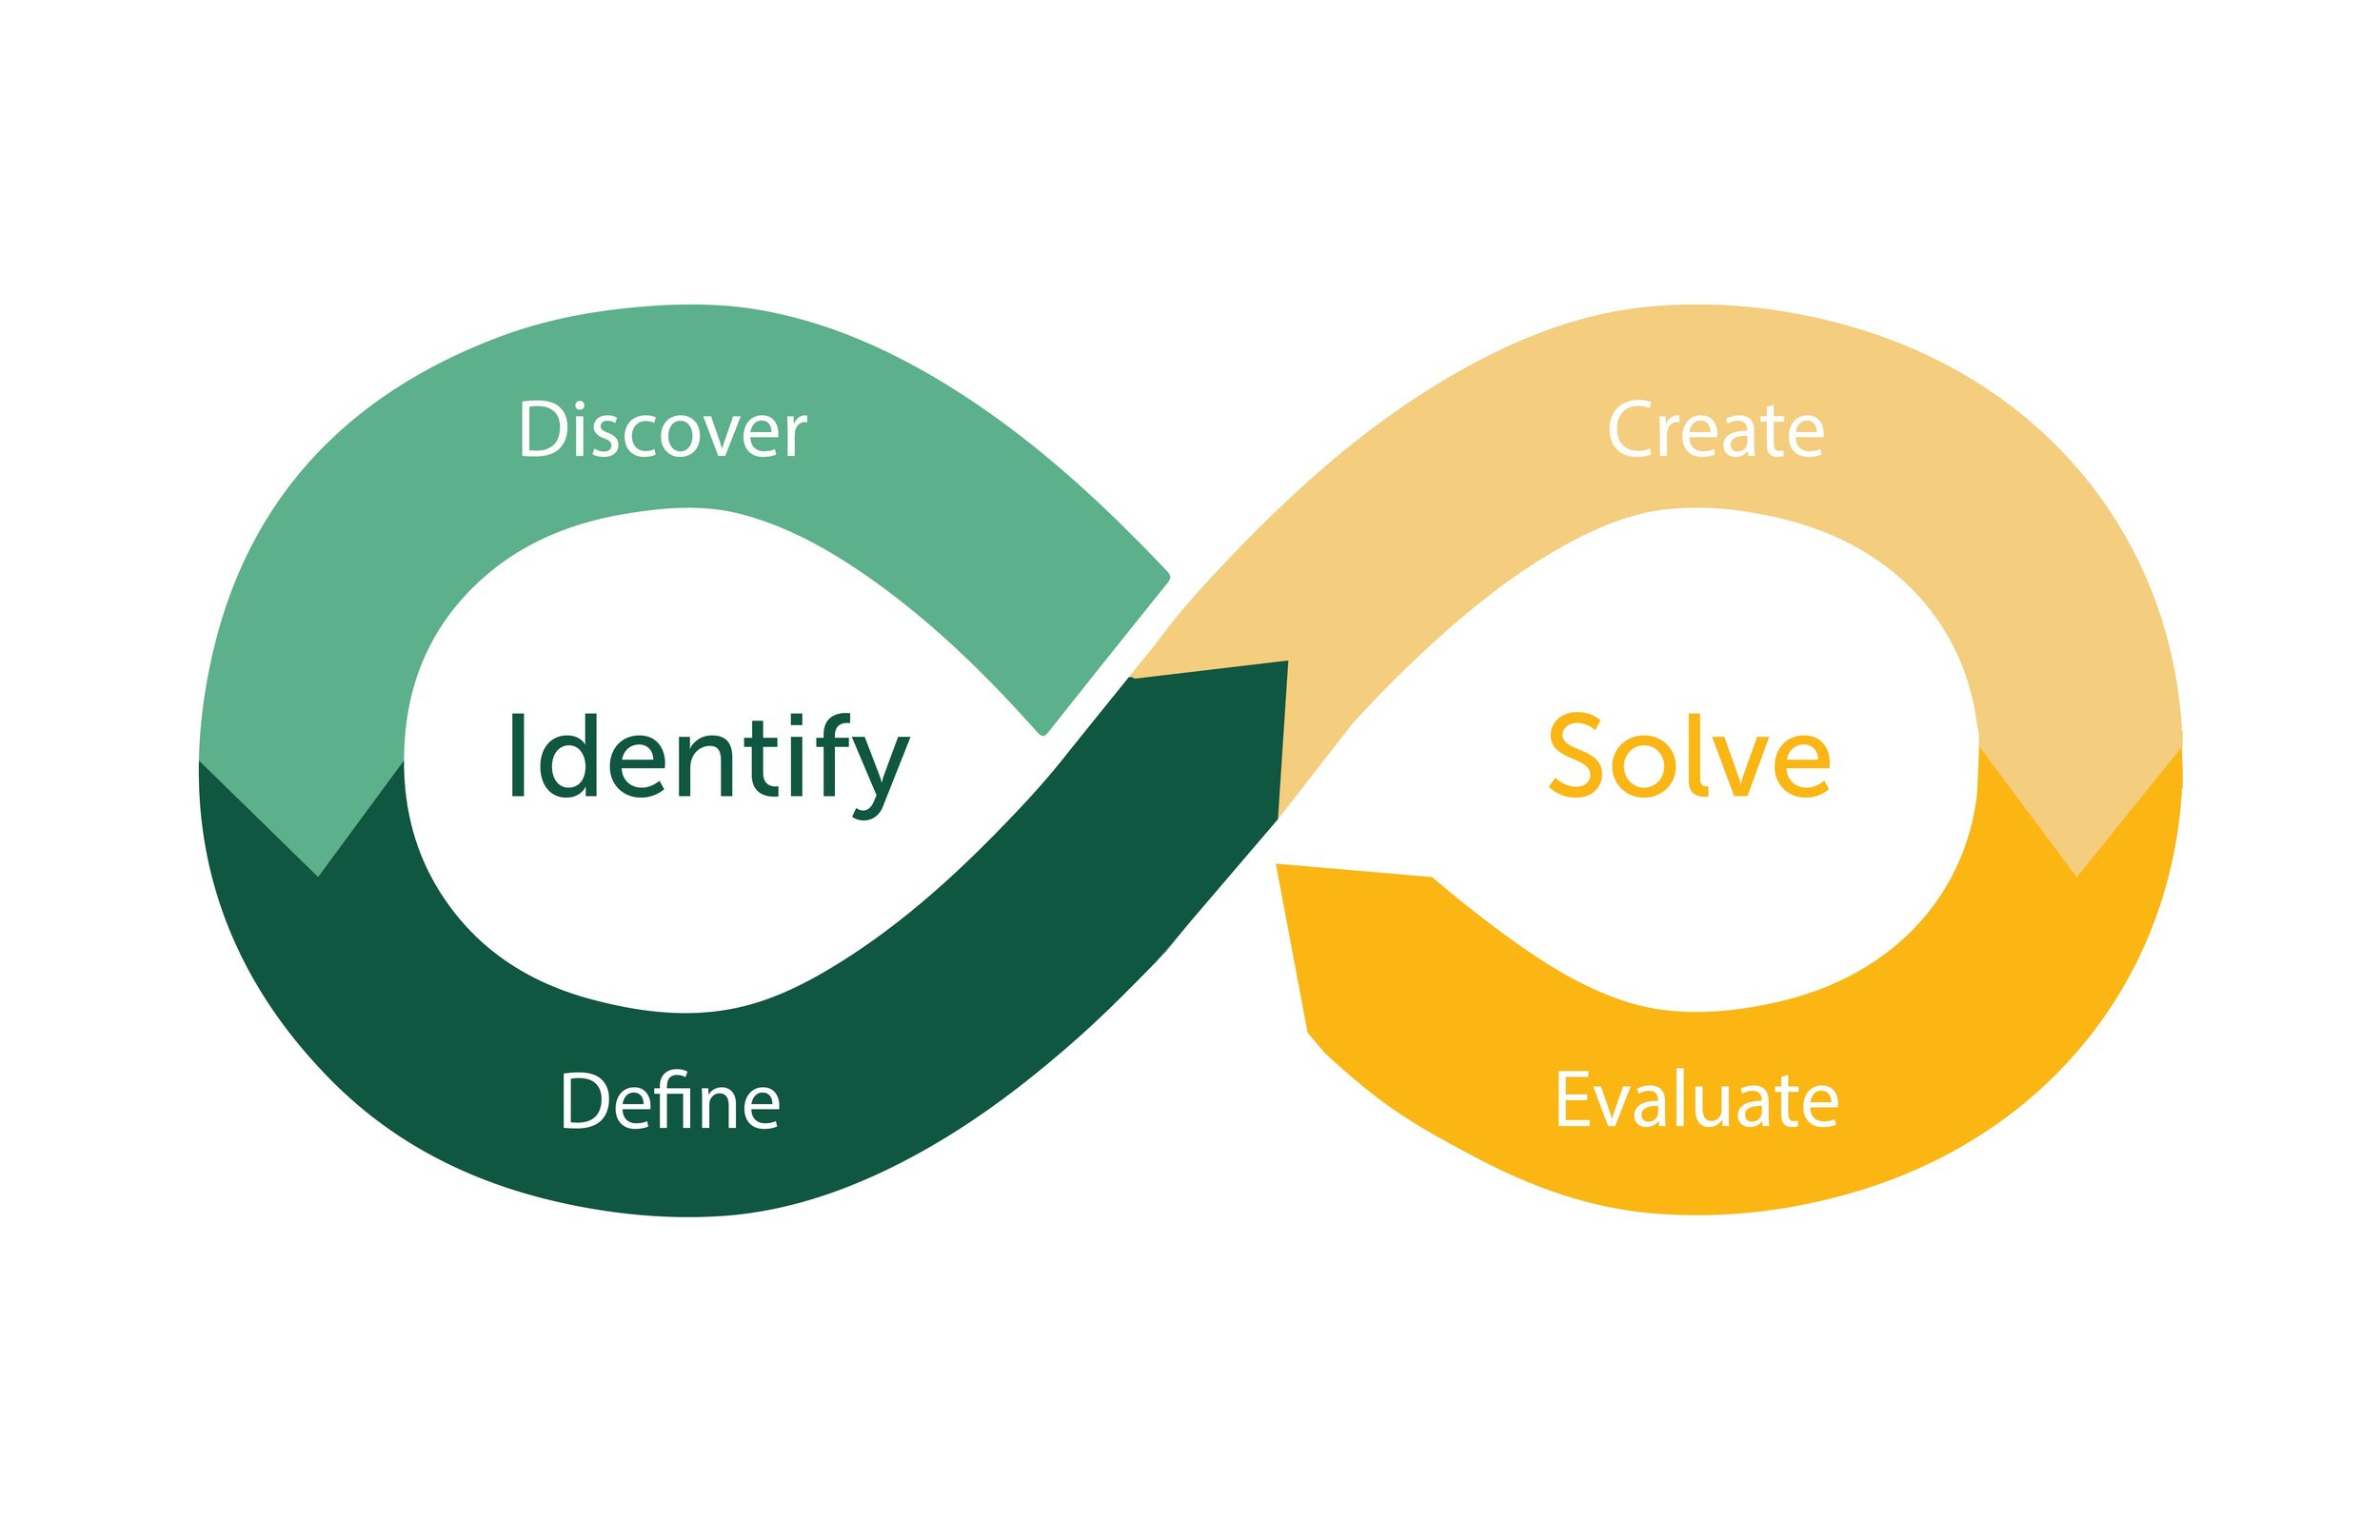 Our framework for Design Thinking: Identify (Discover & Define), and Solve (Create & Evaluate)